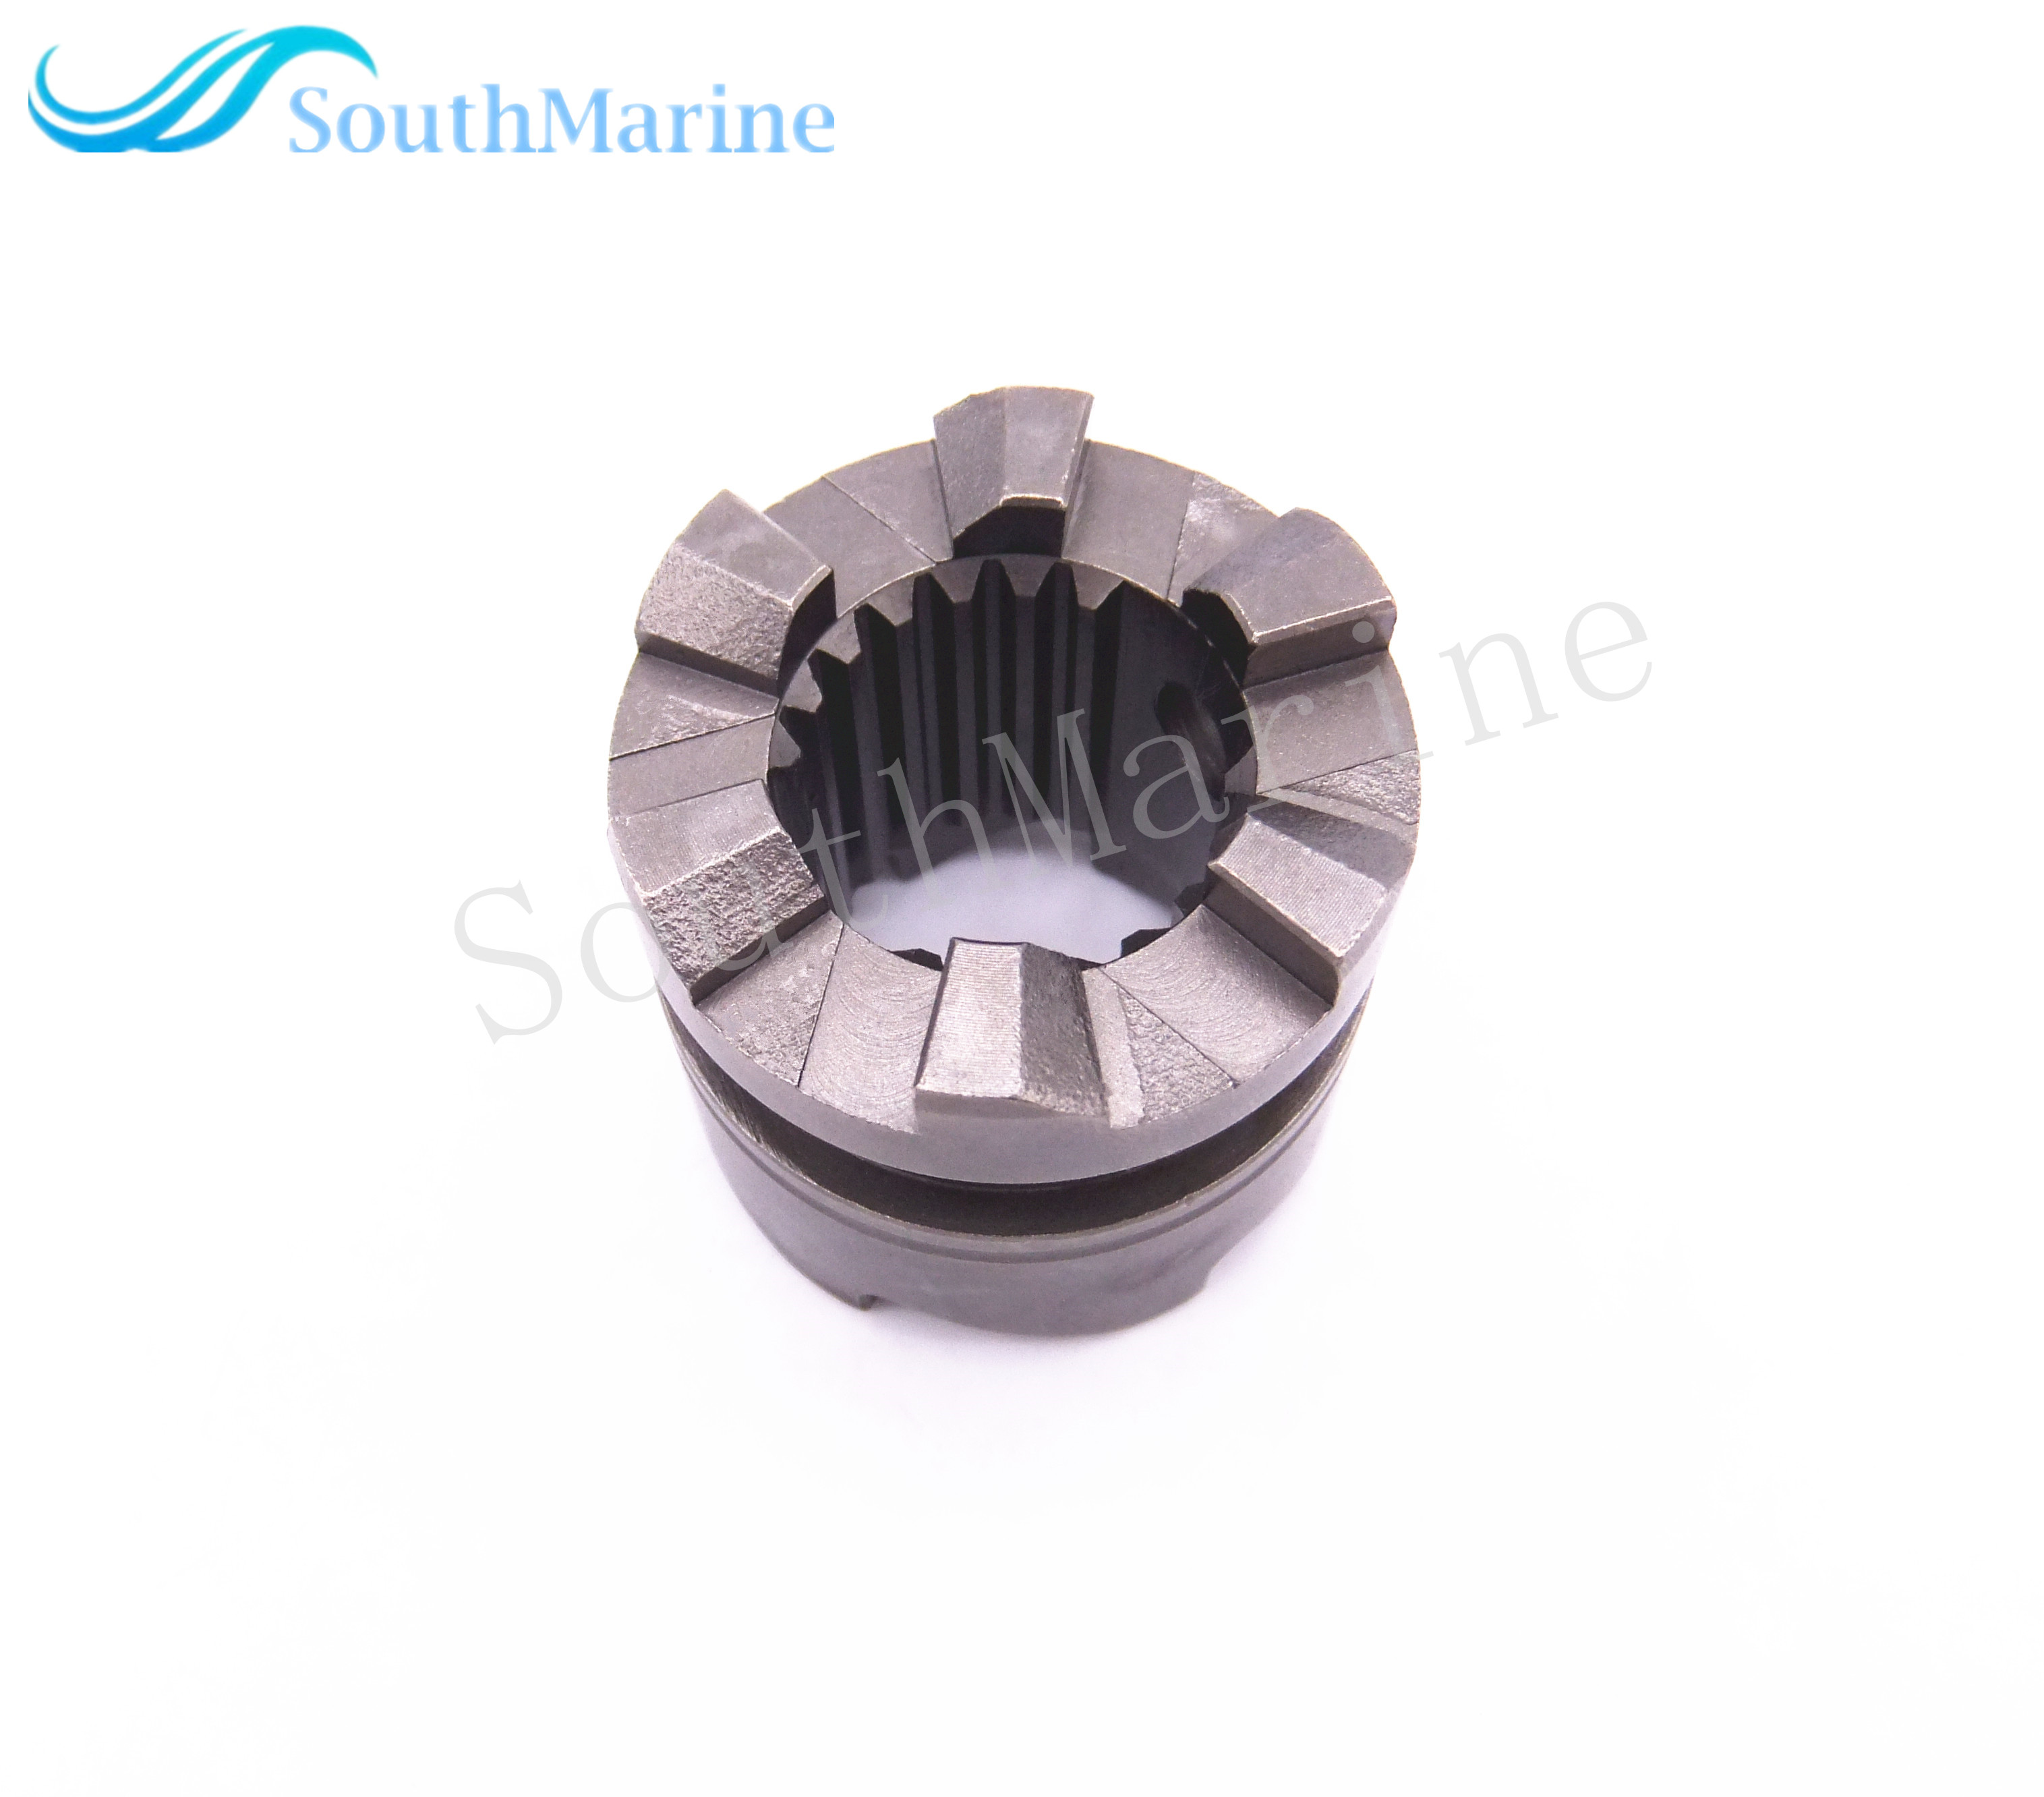 T40-04050003 Clutch Dog for Parsun Outboard Engine 2-Stroke T40 Boat Motor